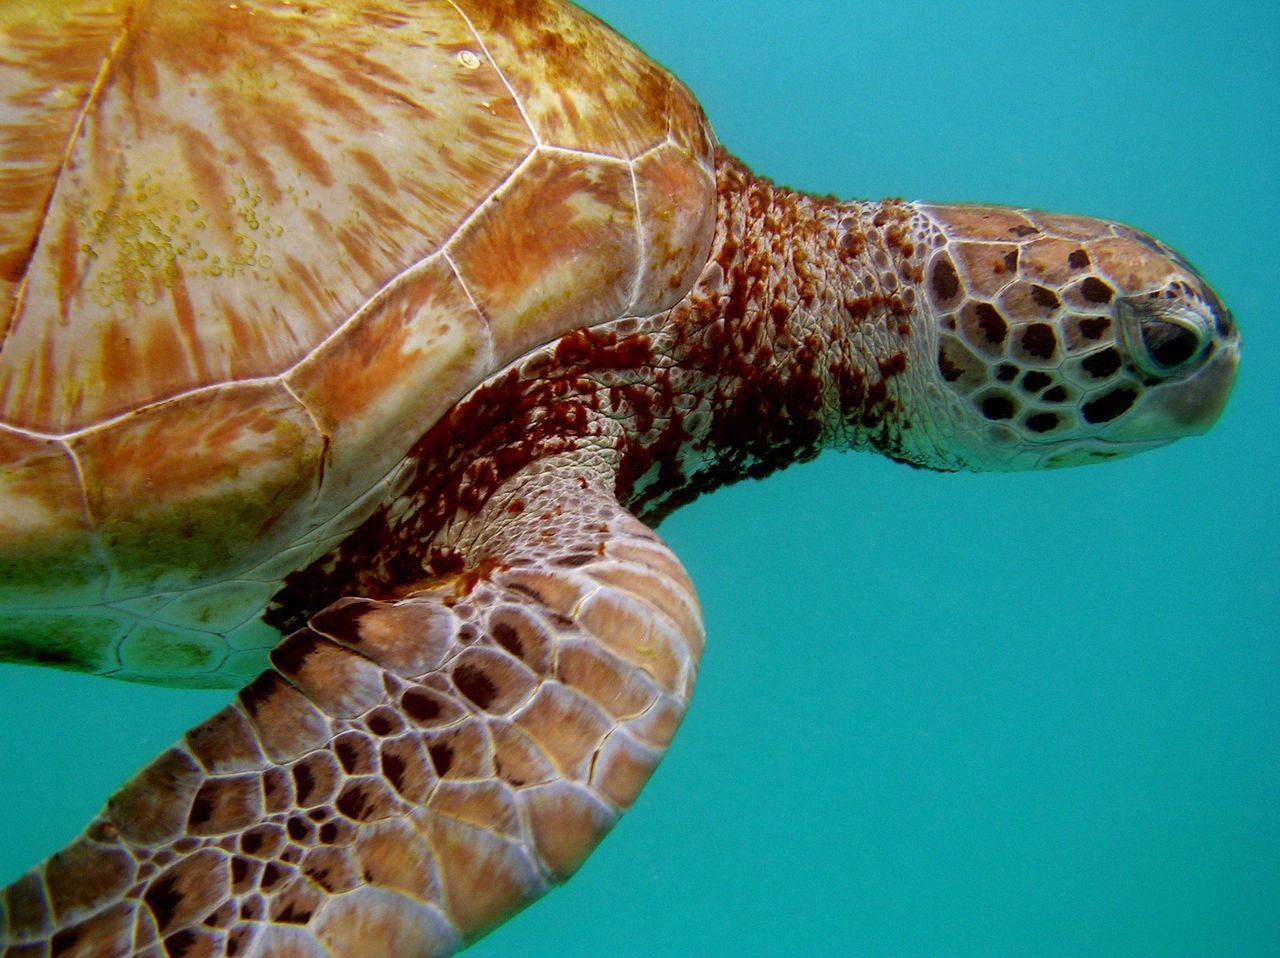 Animal Themes Animal Wildlife Animals In The Wild Close-up Day Nature No People One Animal Outdoors Sea Sea Life Sea Turtle Swimming Turtle UnderSea Underwater Water